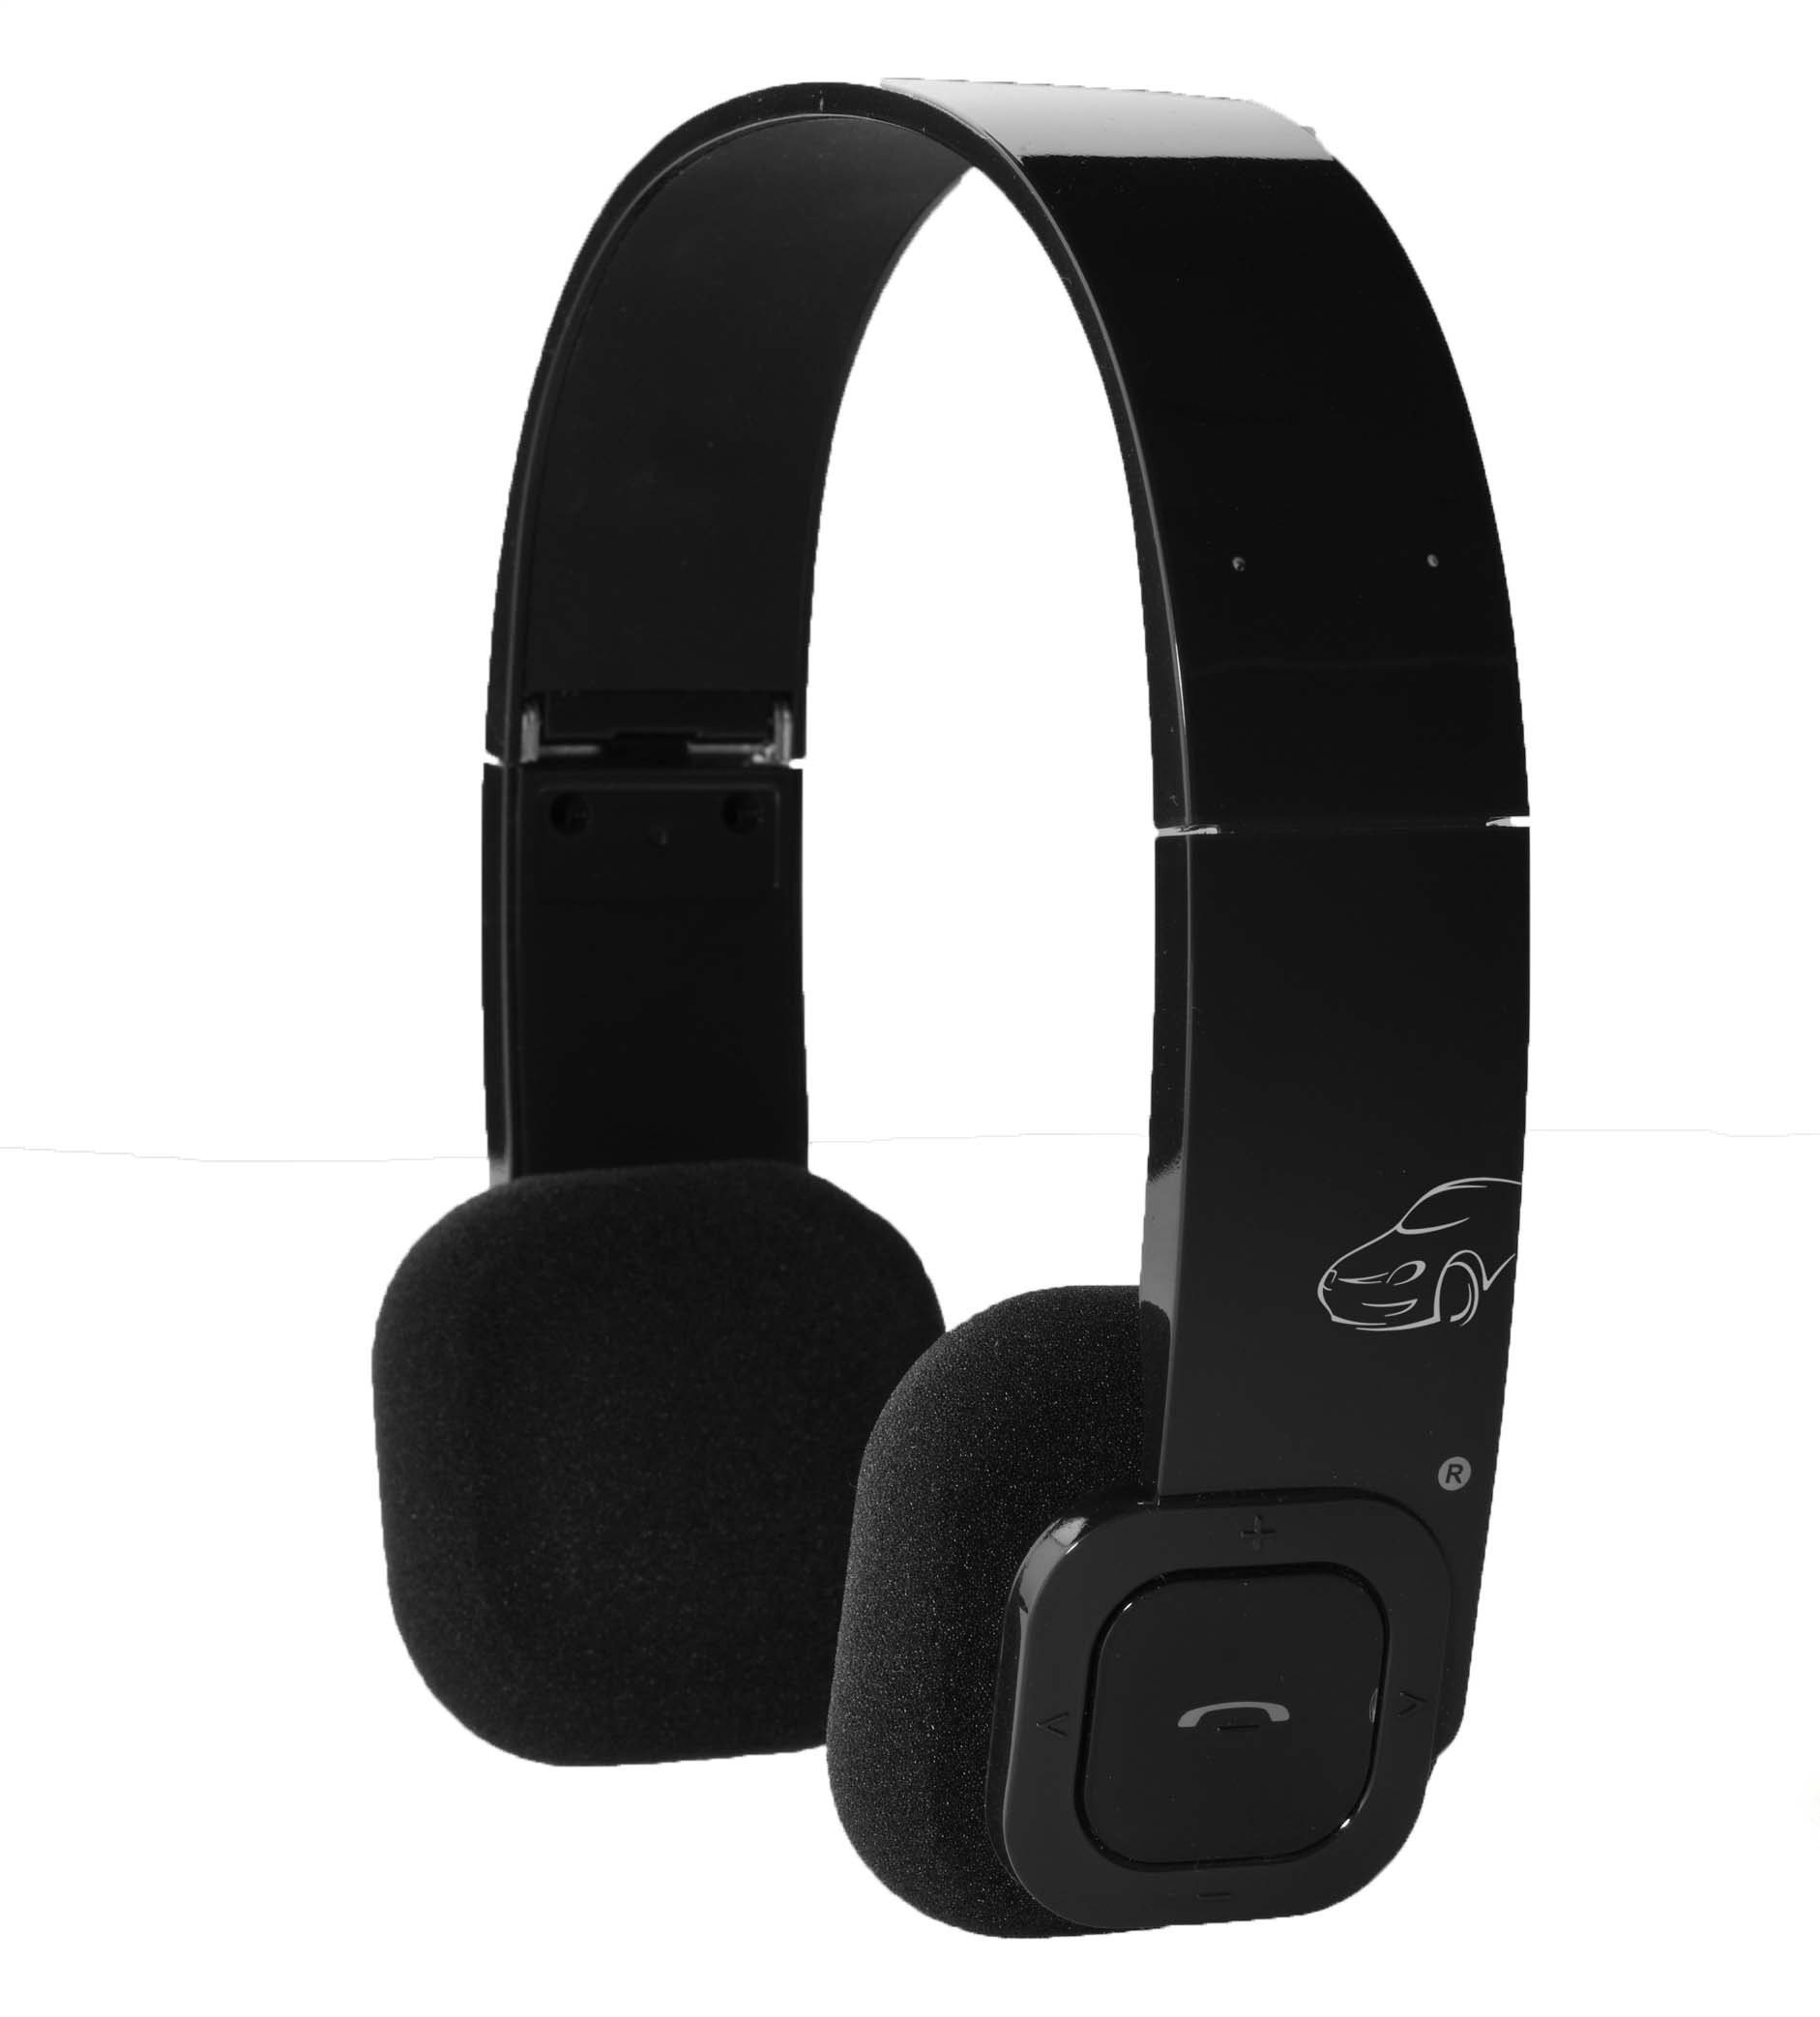 Exonic AI-304 inCarBite Wireless Bluetooth Headphones with Built-in Mic for iPad, iPhone, Laptop, Android, Devices with Bluetooth Paring (Discontinued by Manufacturer)